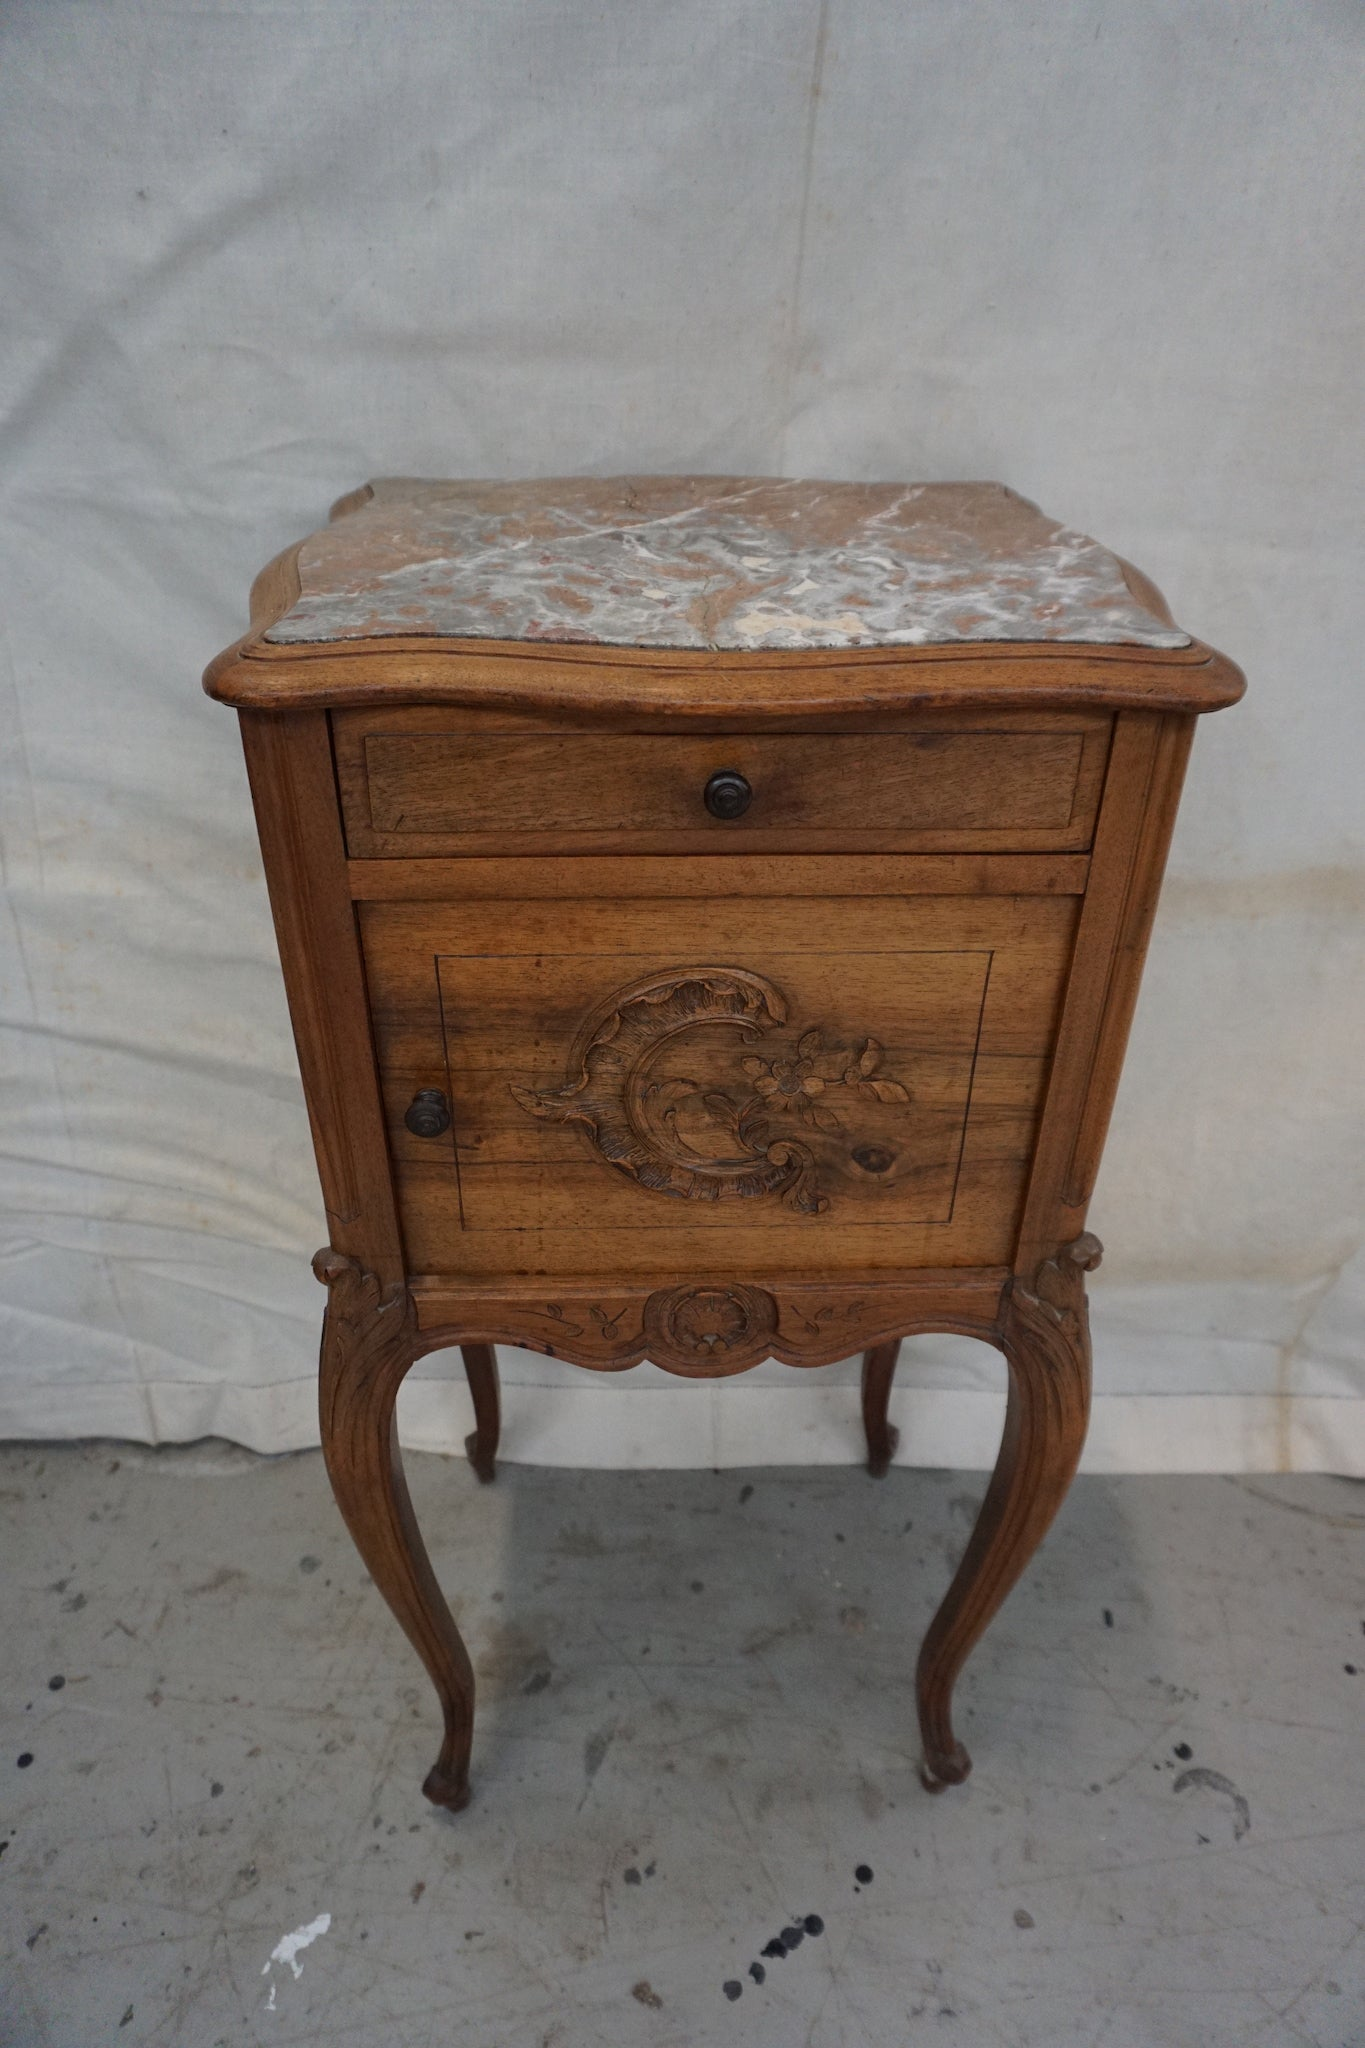 Antique French Bedside Table with Simple Carving